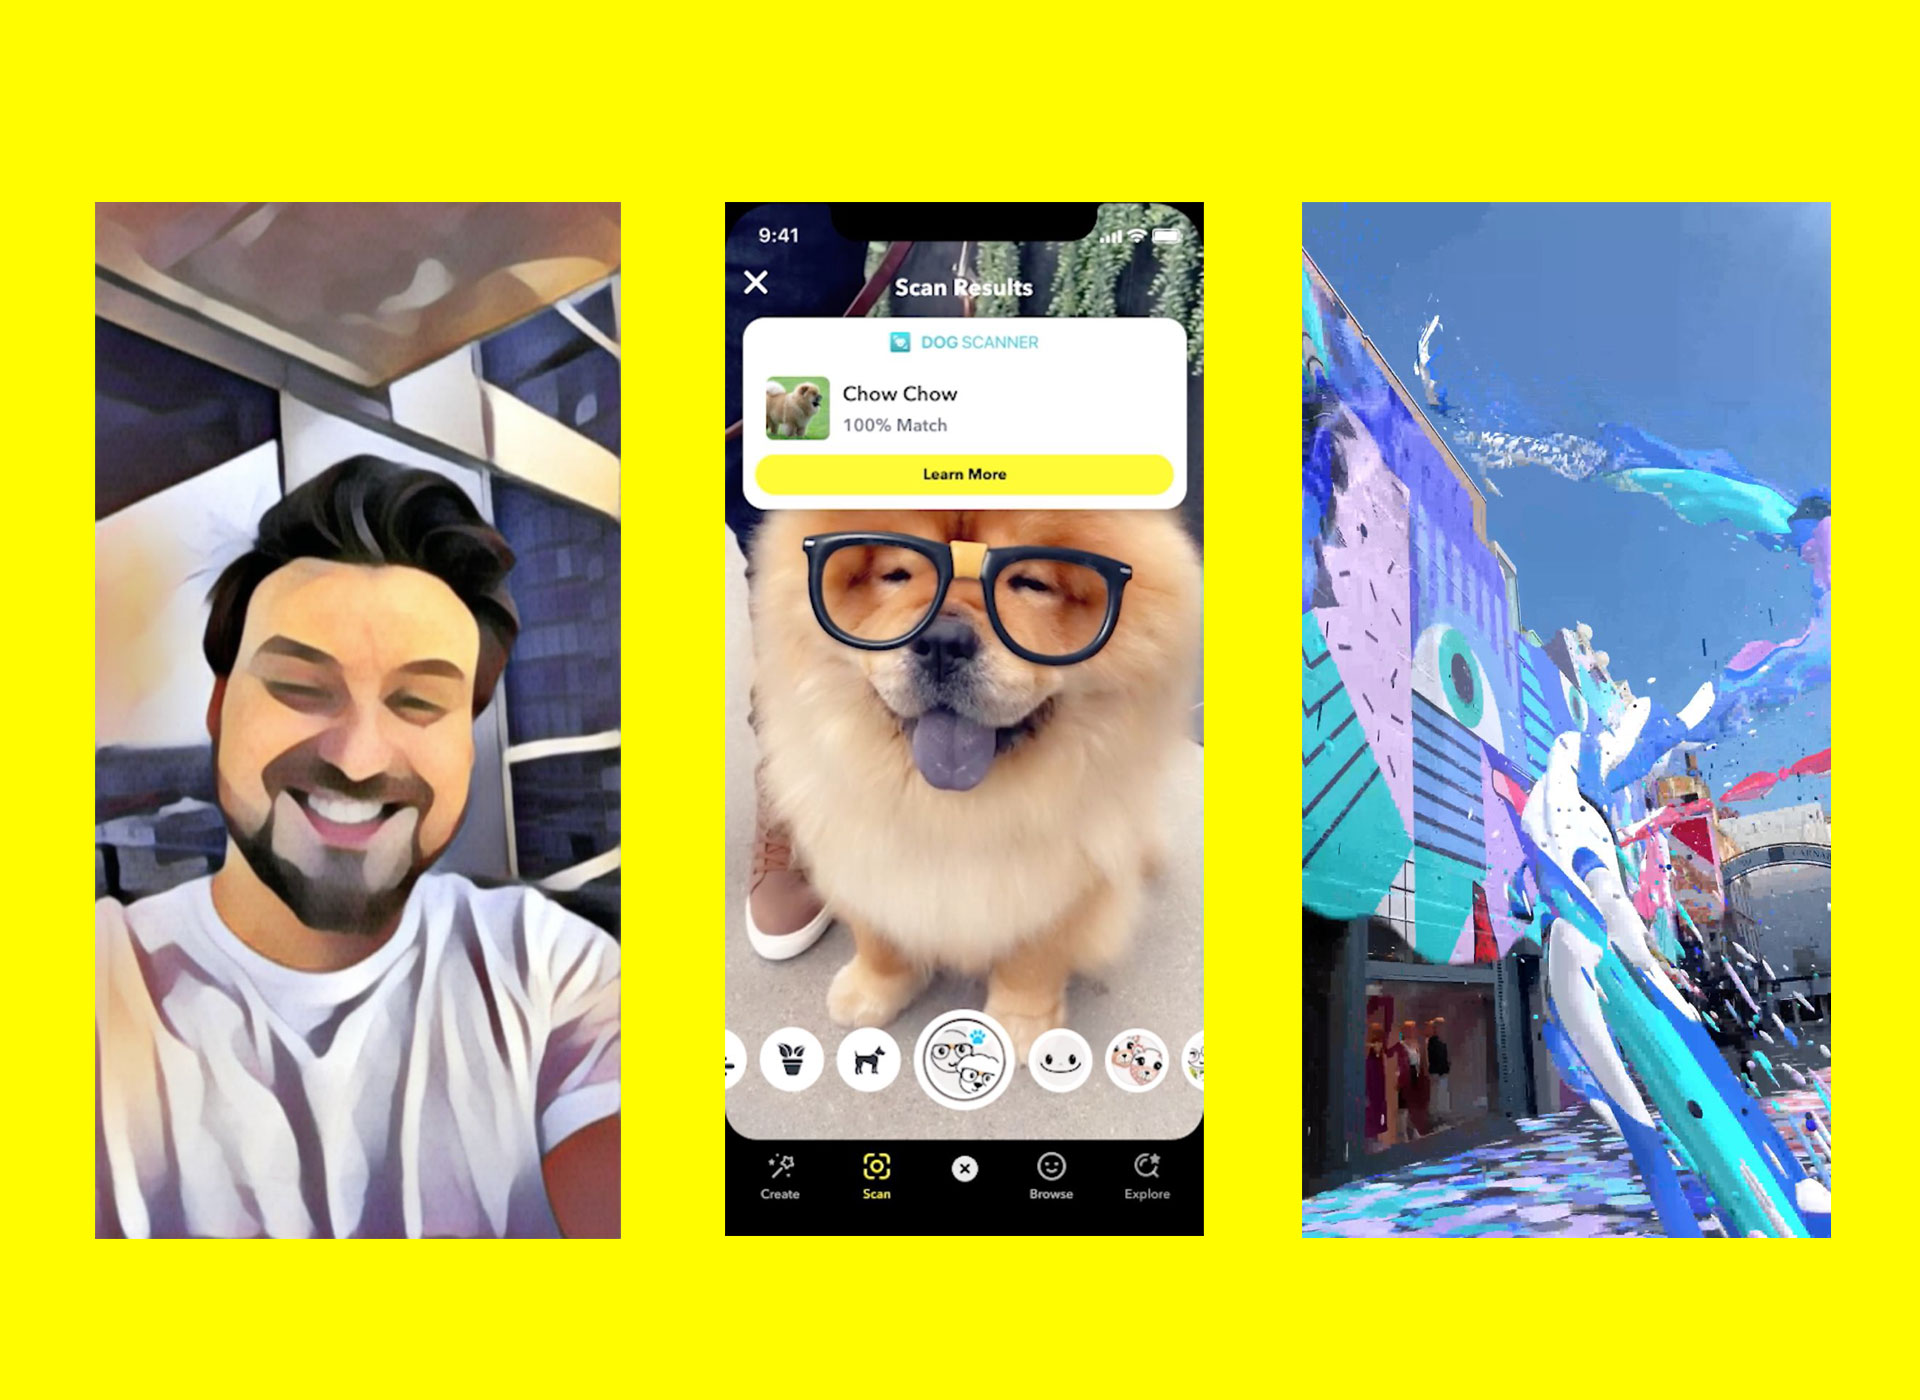 Snap Q2 results: Revenue expectations beat, but Covid casts shadow